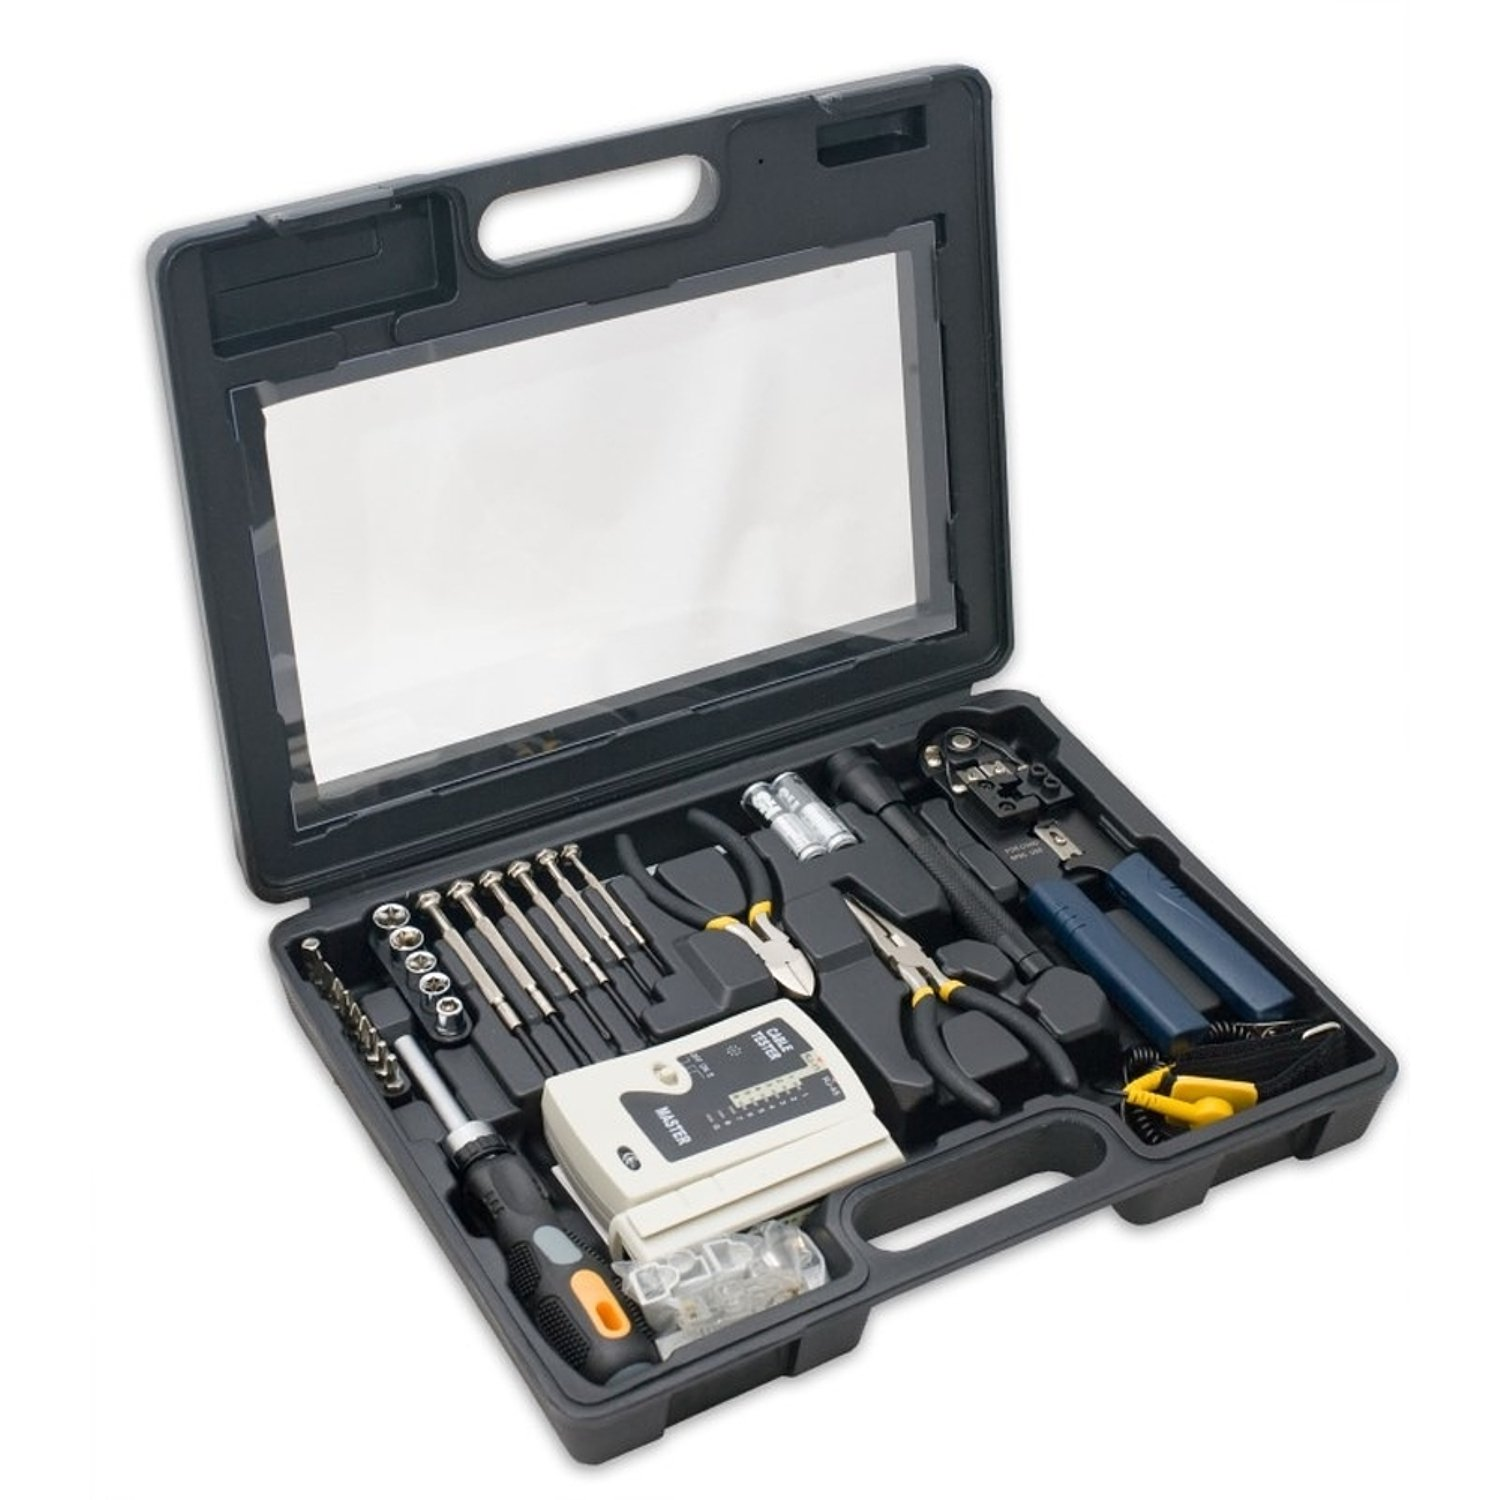 Syba SY-ACC65047 50 Pieces Computer and Networking Tool Kit